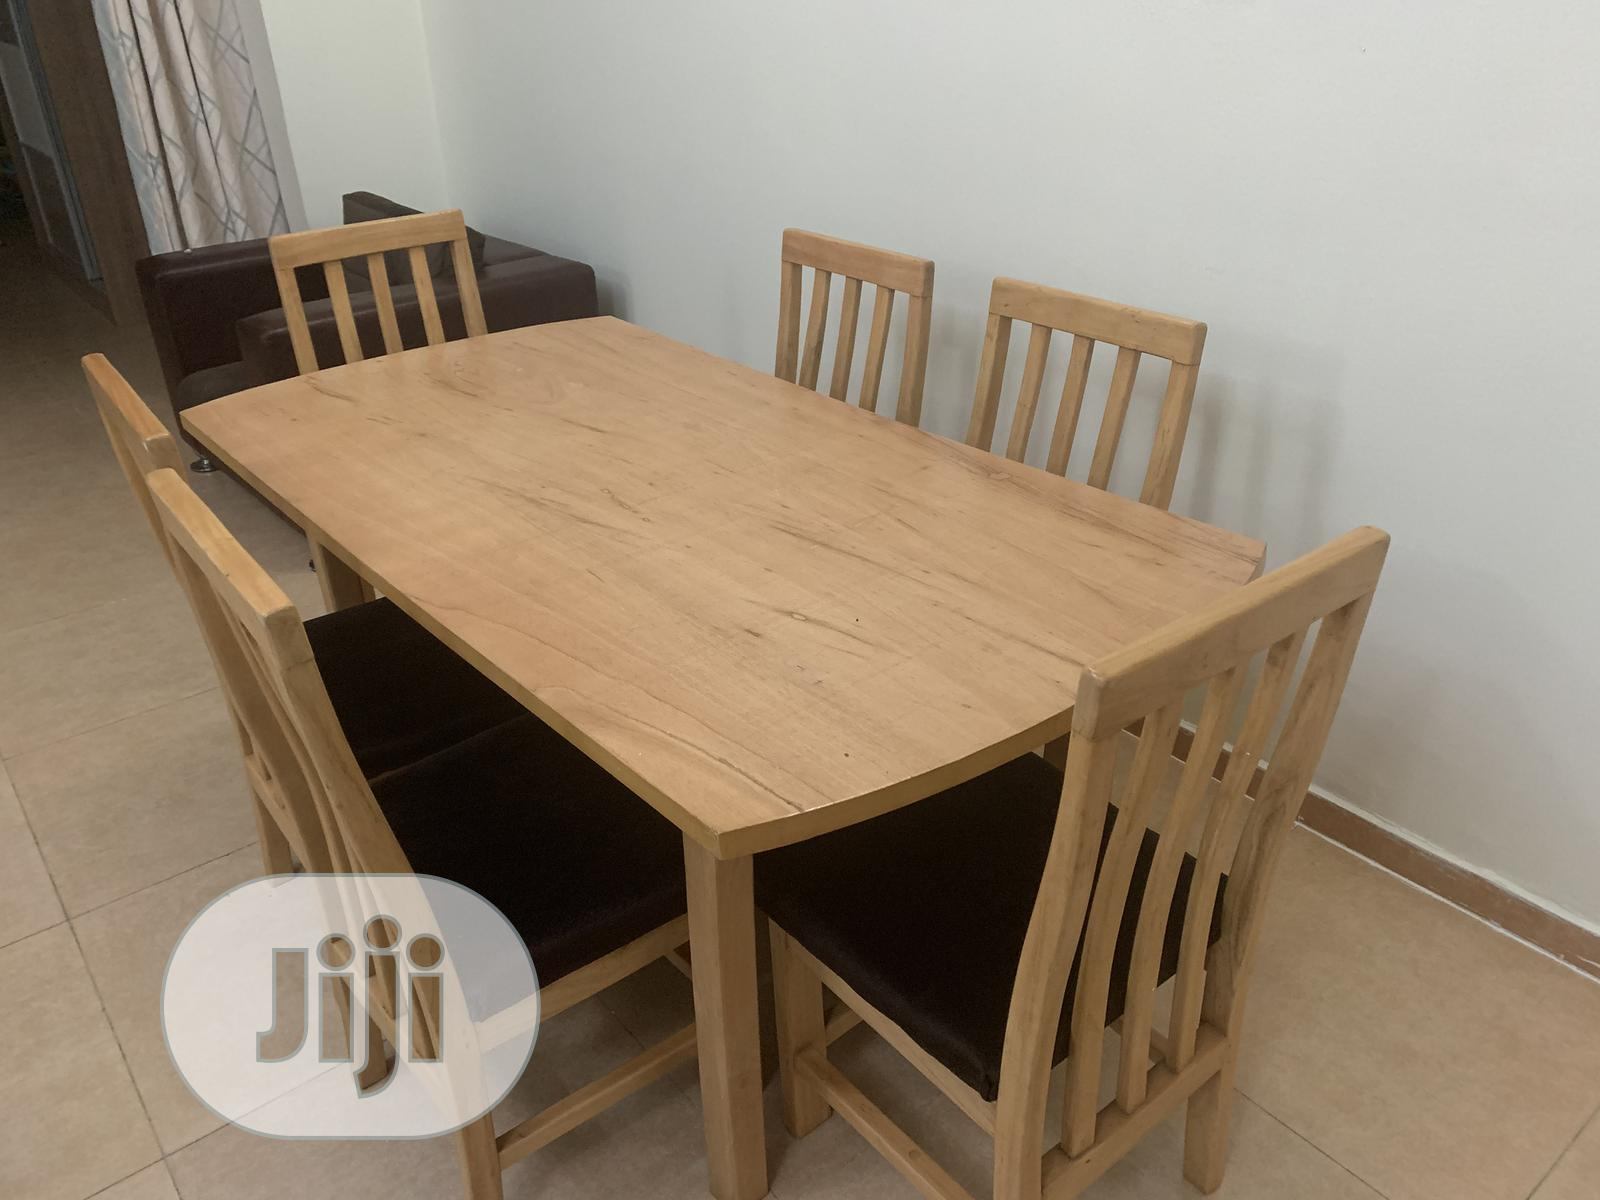 Turkish Dining Table With 6 Chairs | Furniture for sale in Wuse 2, Abuja (FCT) State, Nigeria